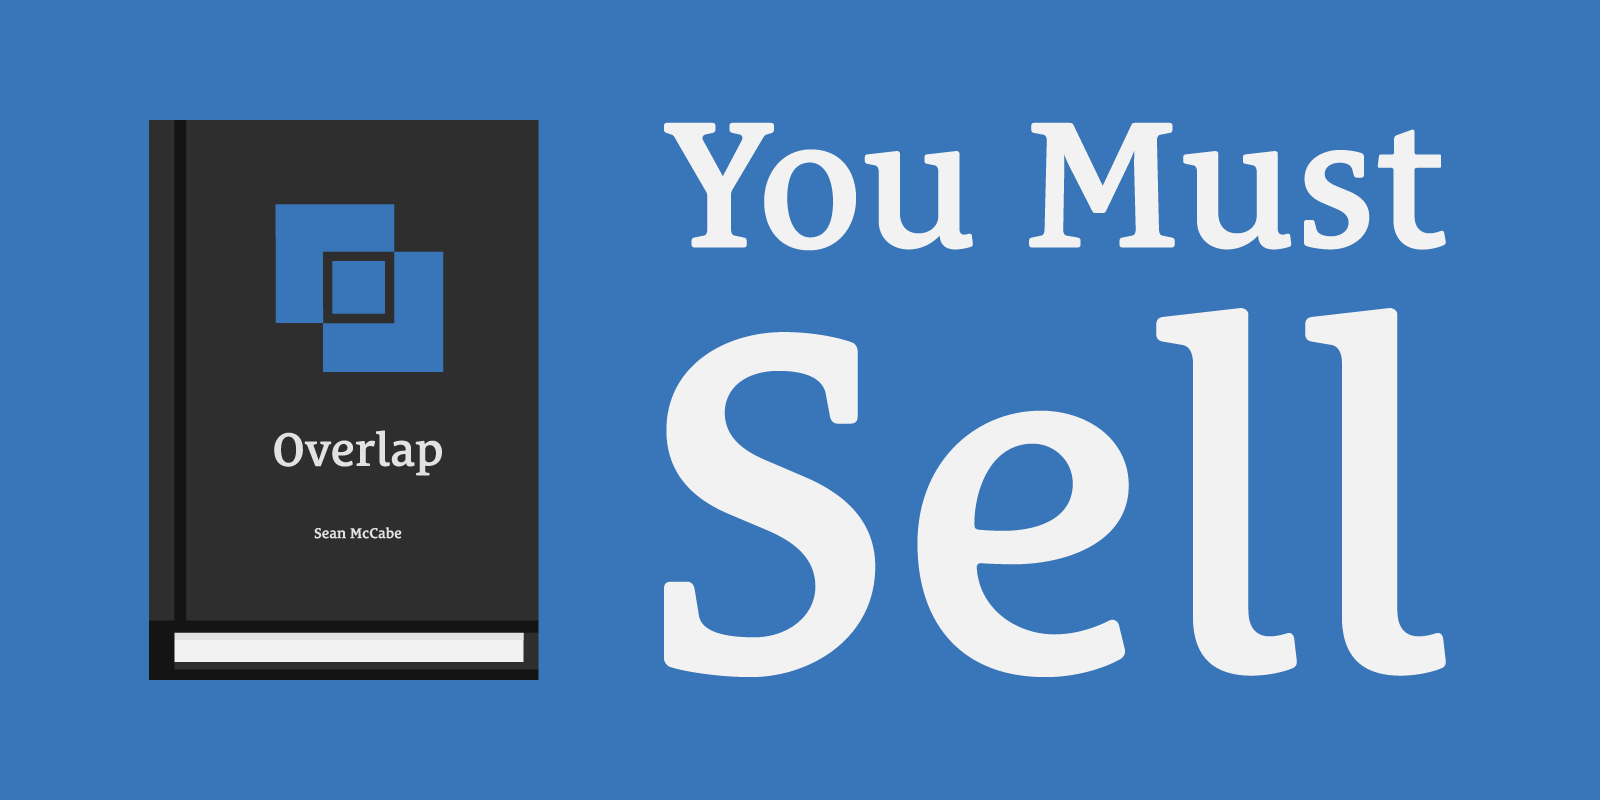 You Must Sell - A Free Chapter From the Overlap Book